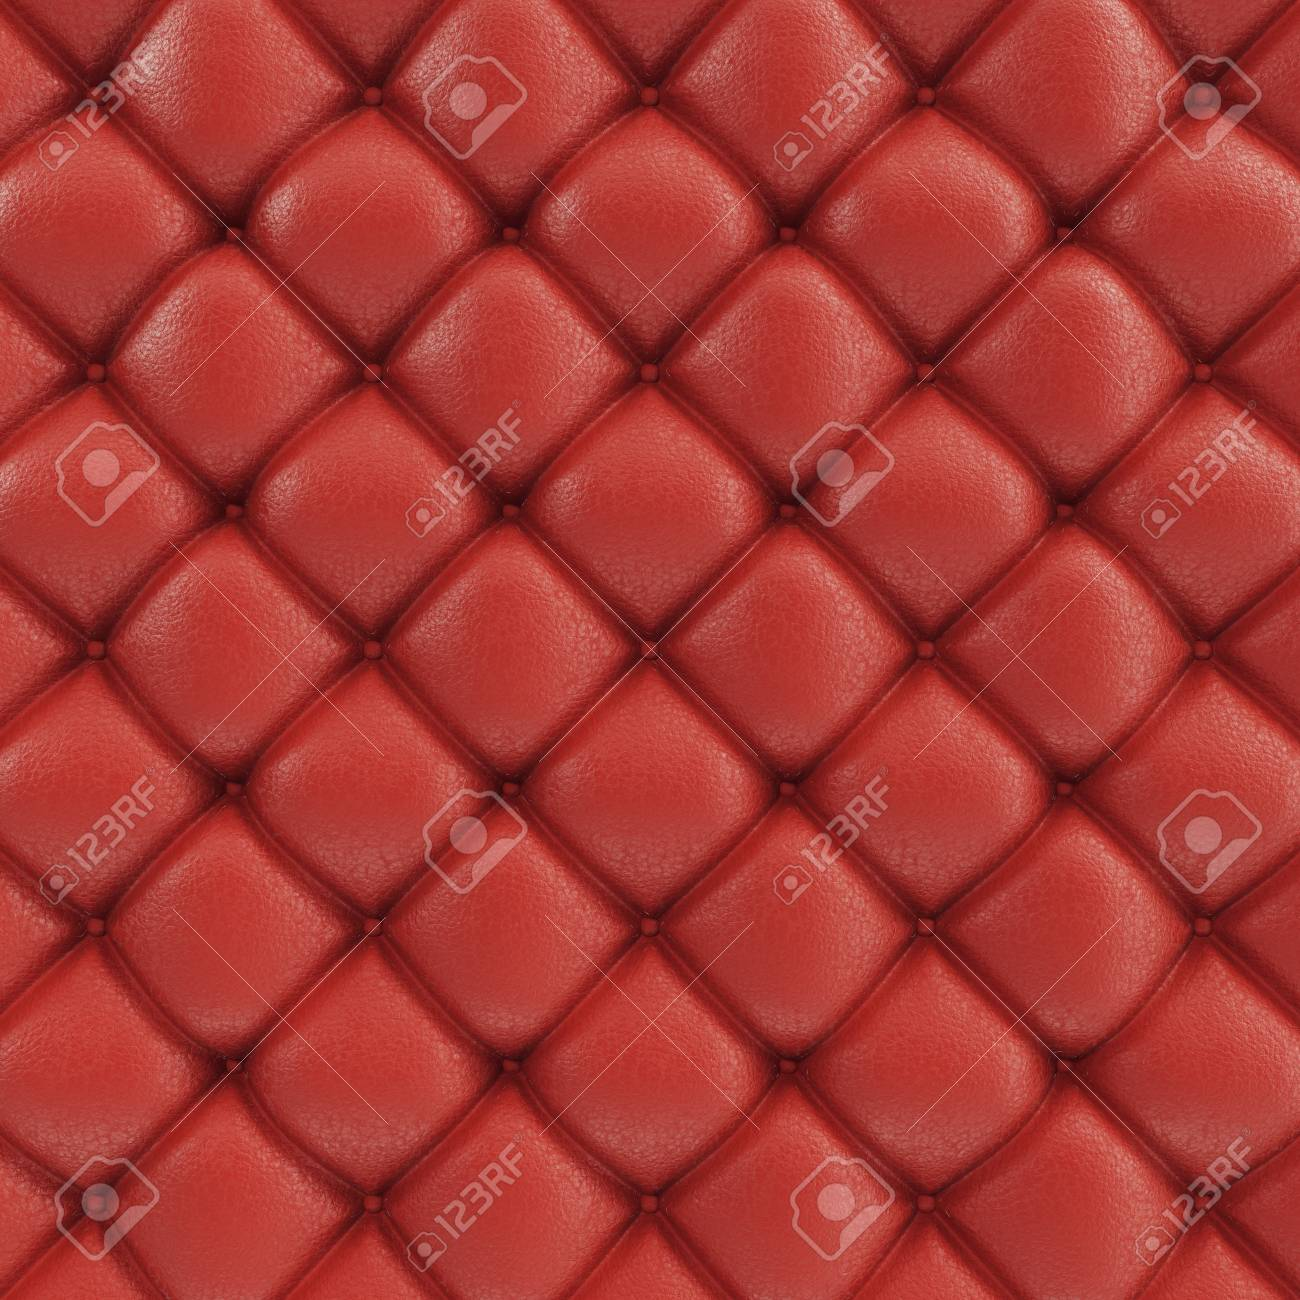 3d Illustration Leather Sofa Texture Luxurious Texture Of Red